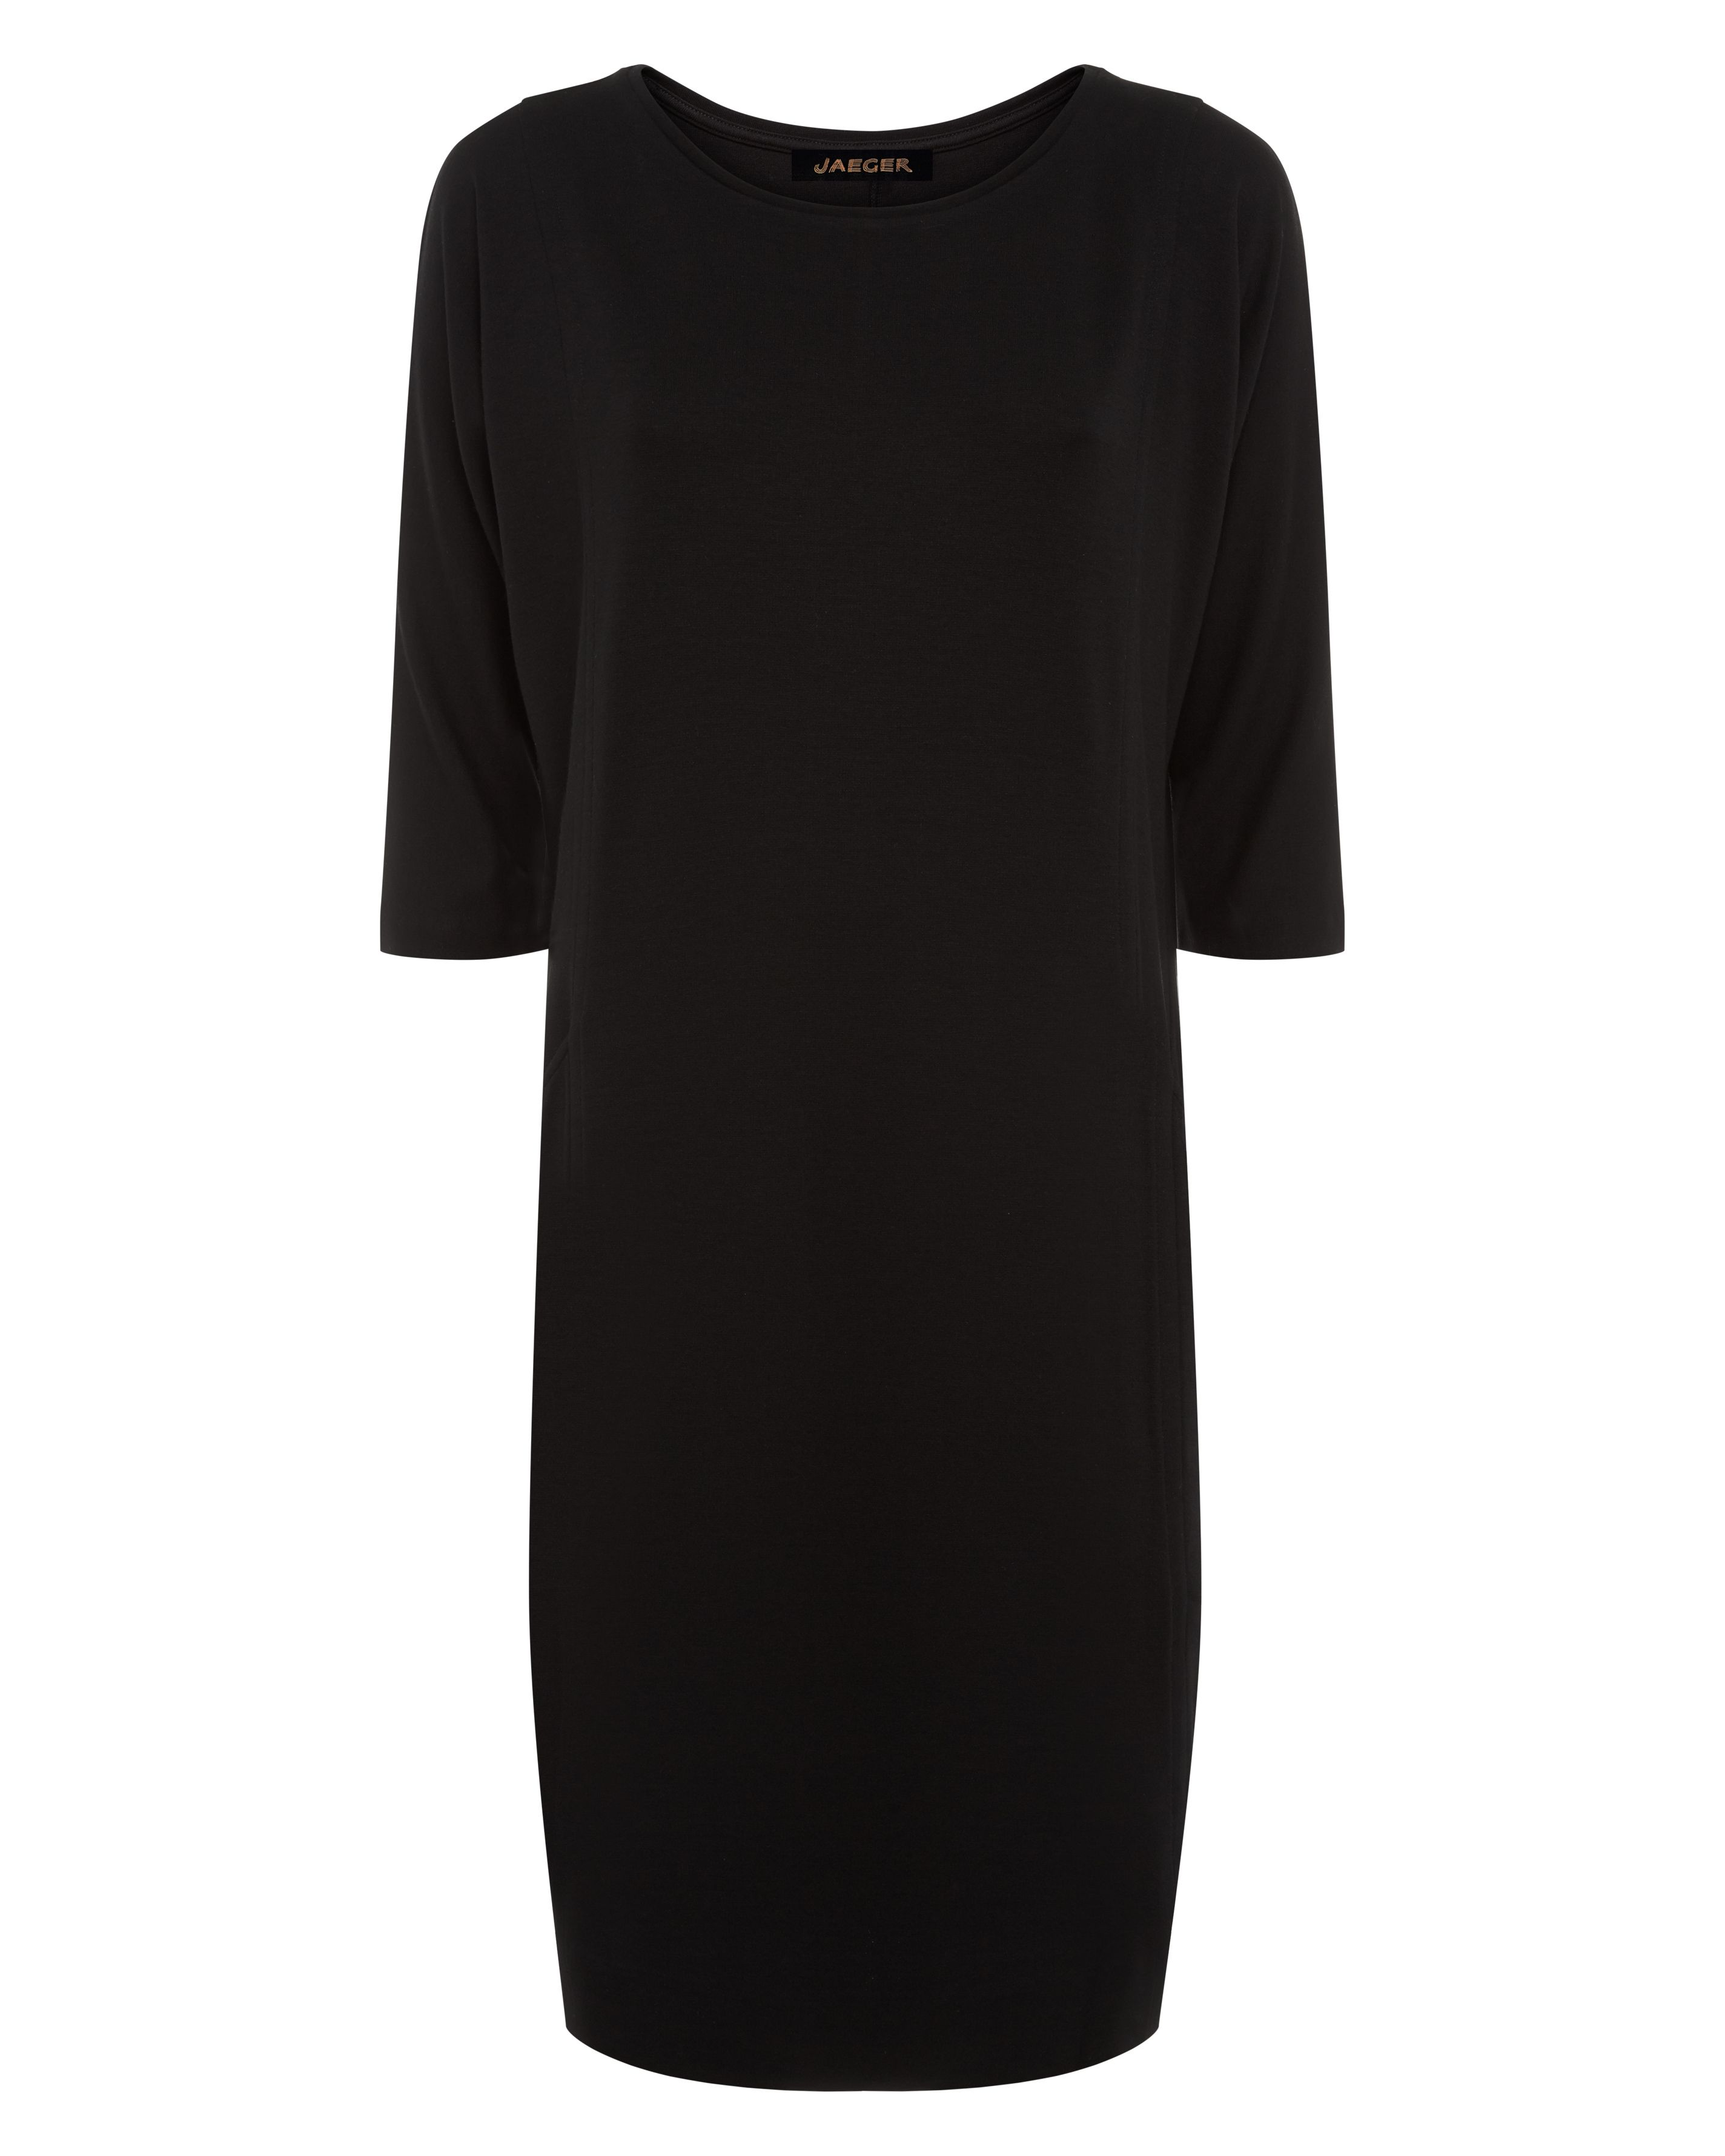 Jaeger Jersey Seamed Detail Dress, Black